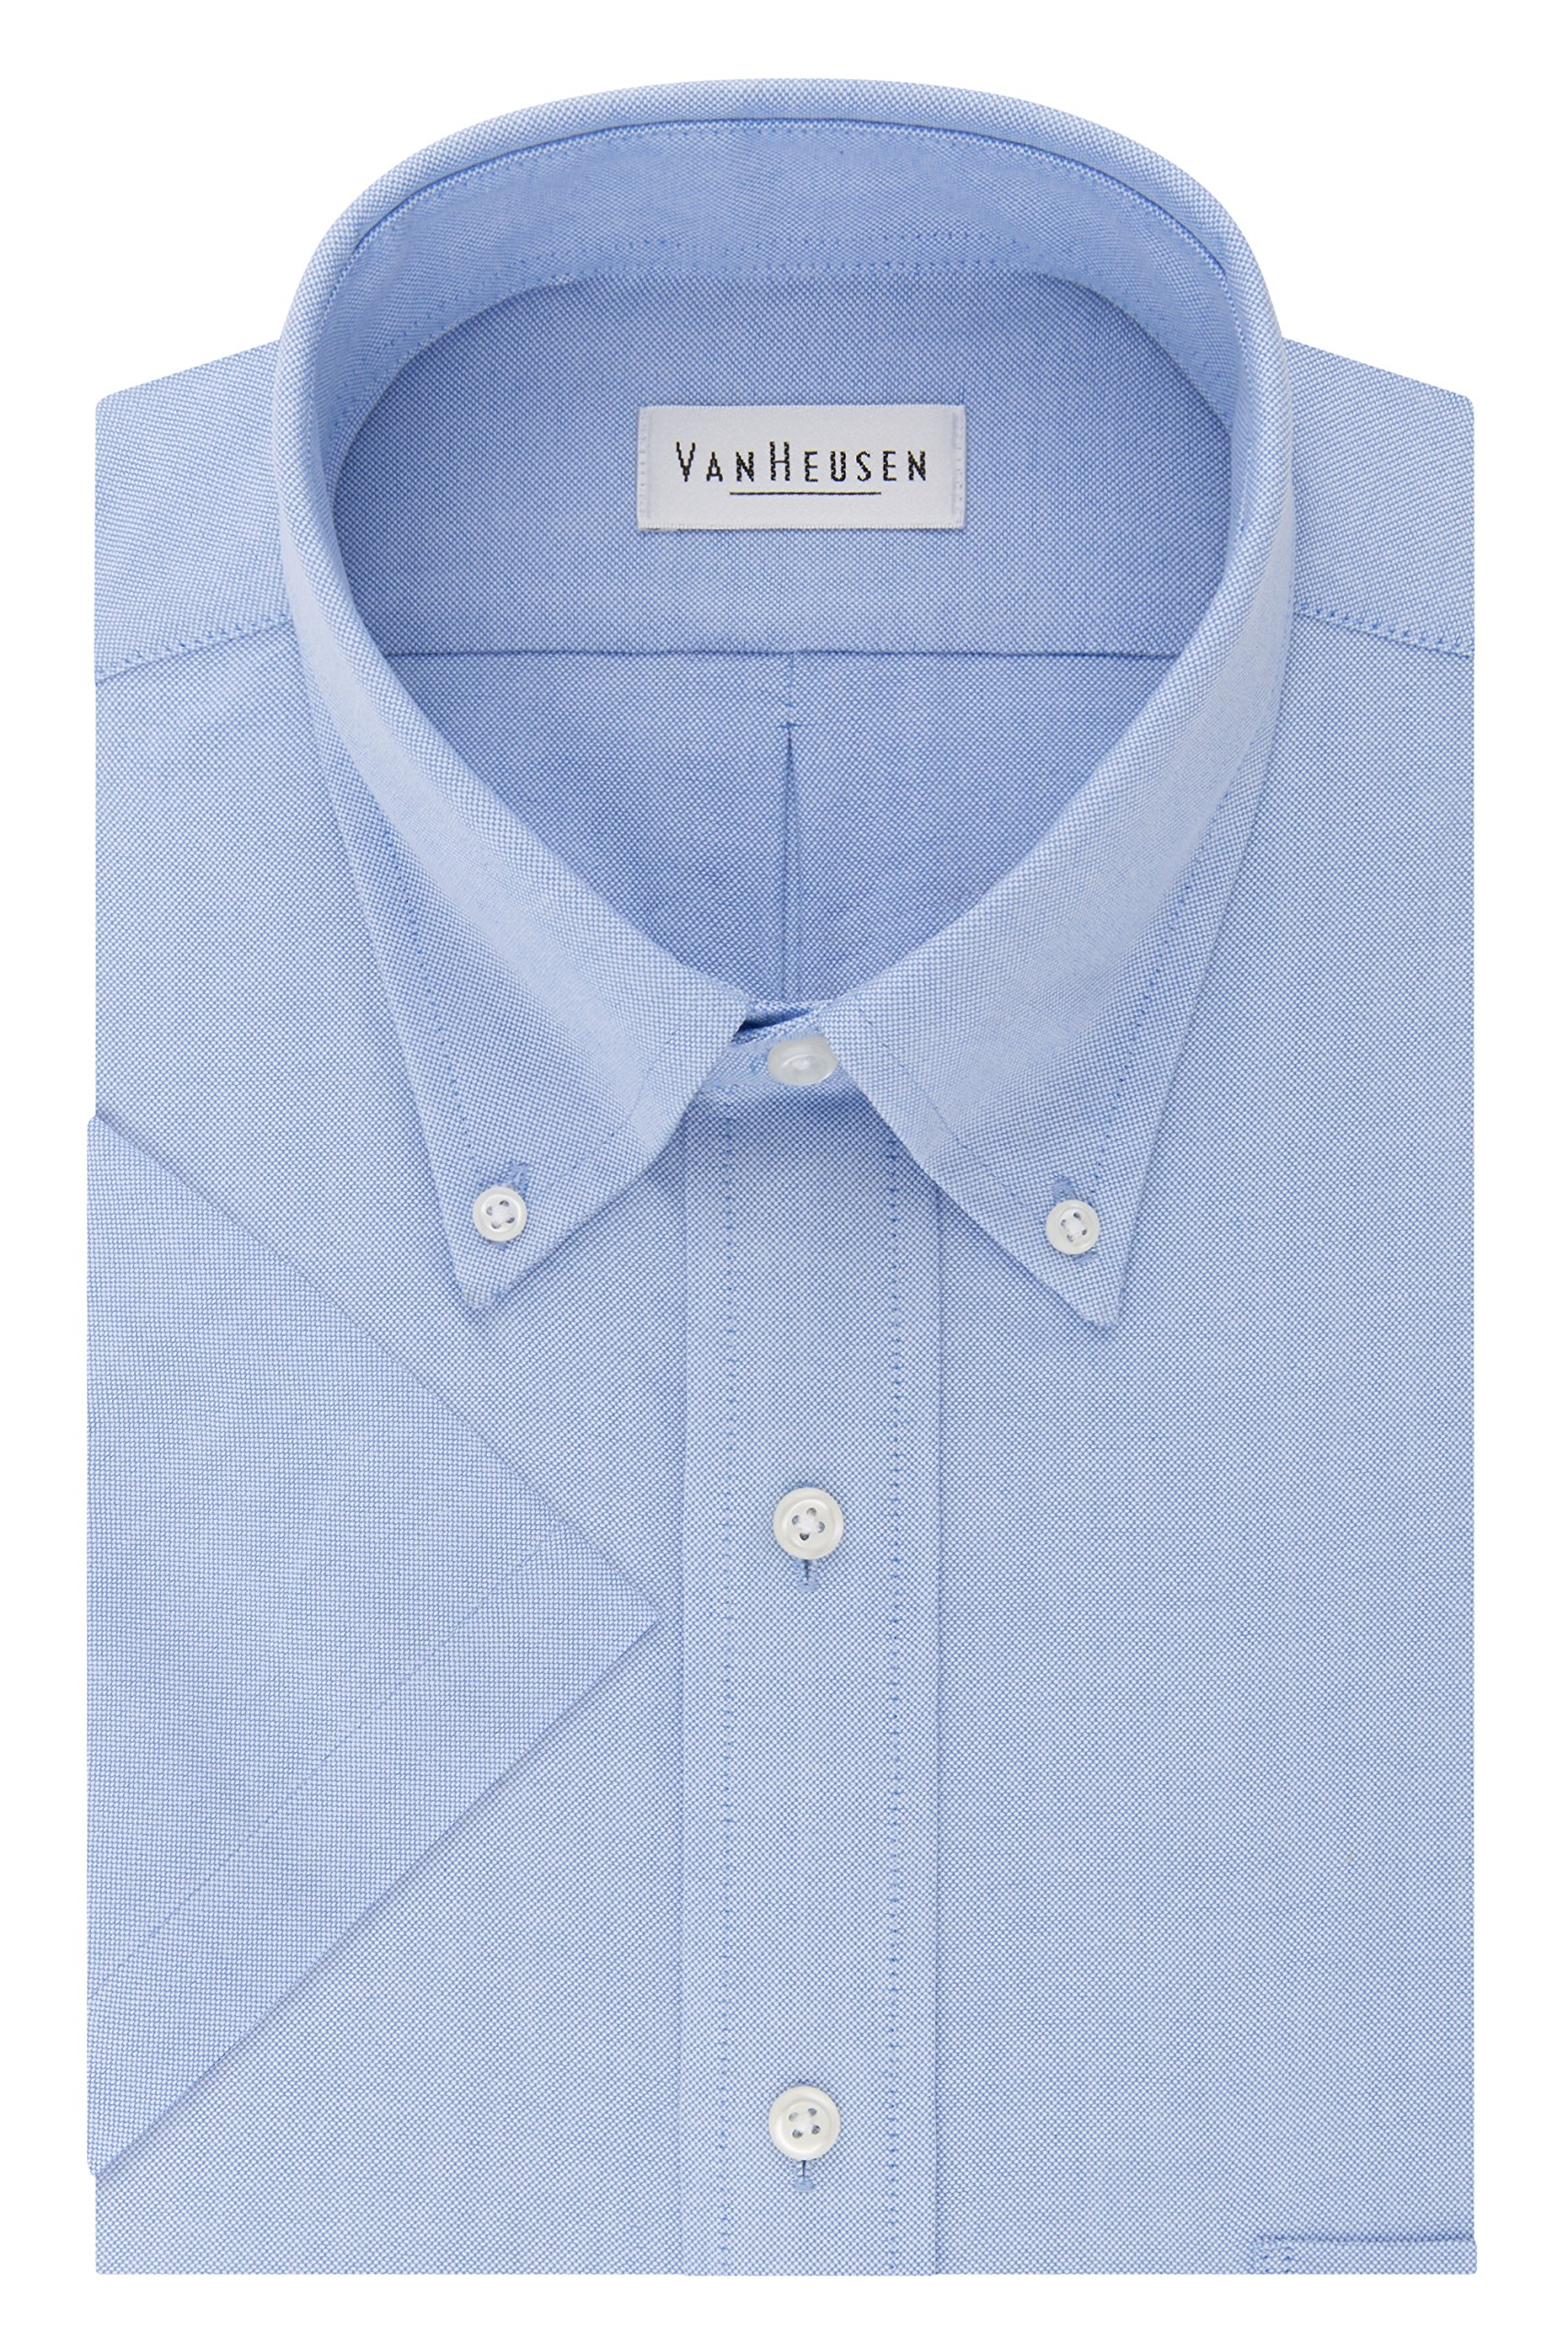 Van Heusen Men's Short Sleeve Oxford Dress Shirt, Blue, Small